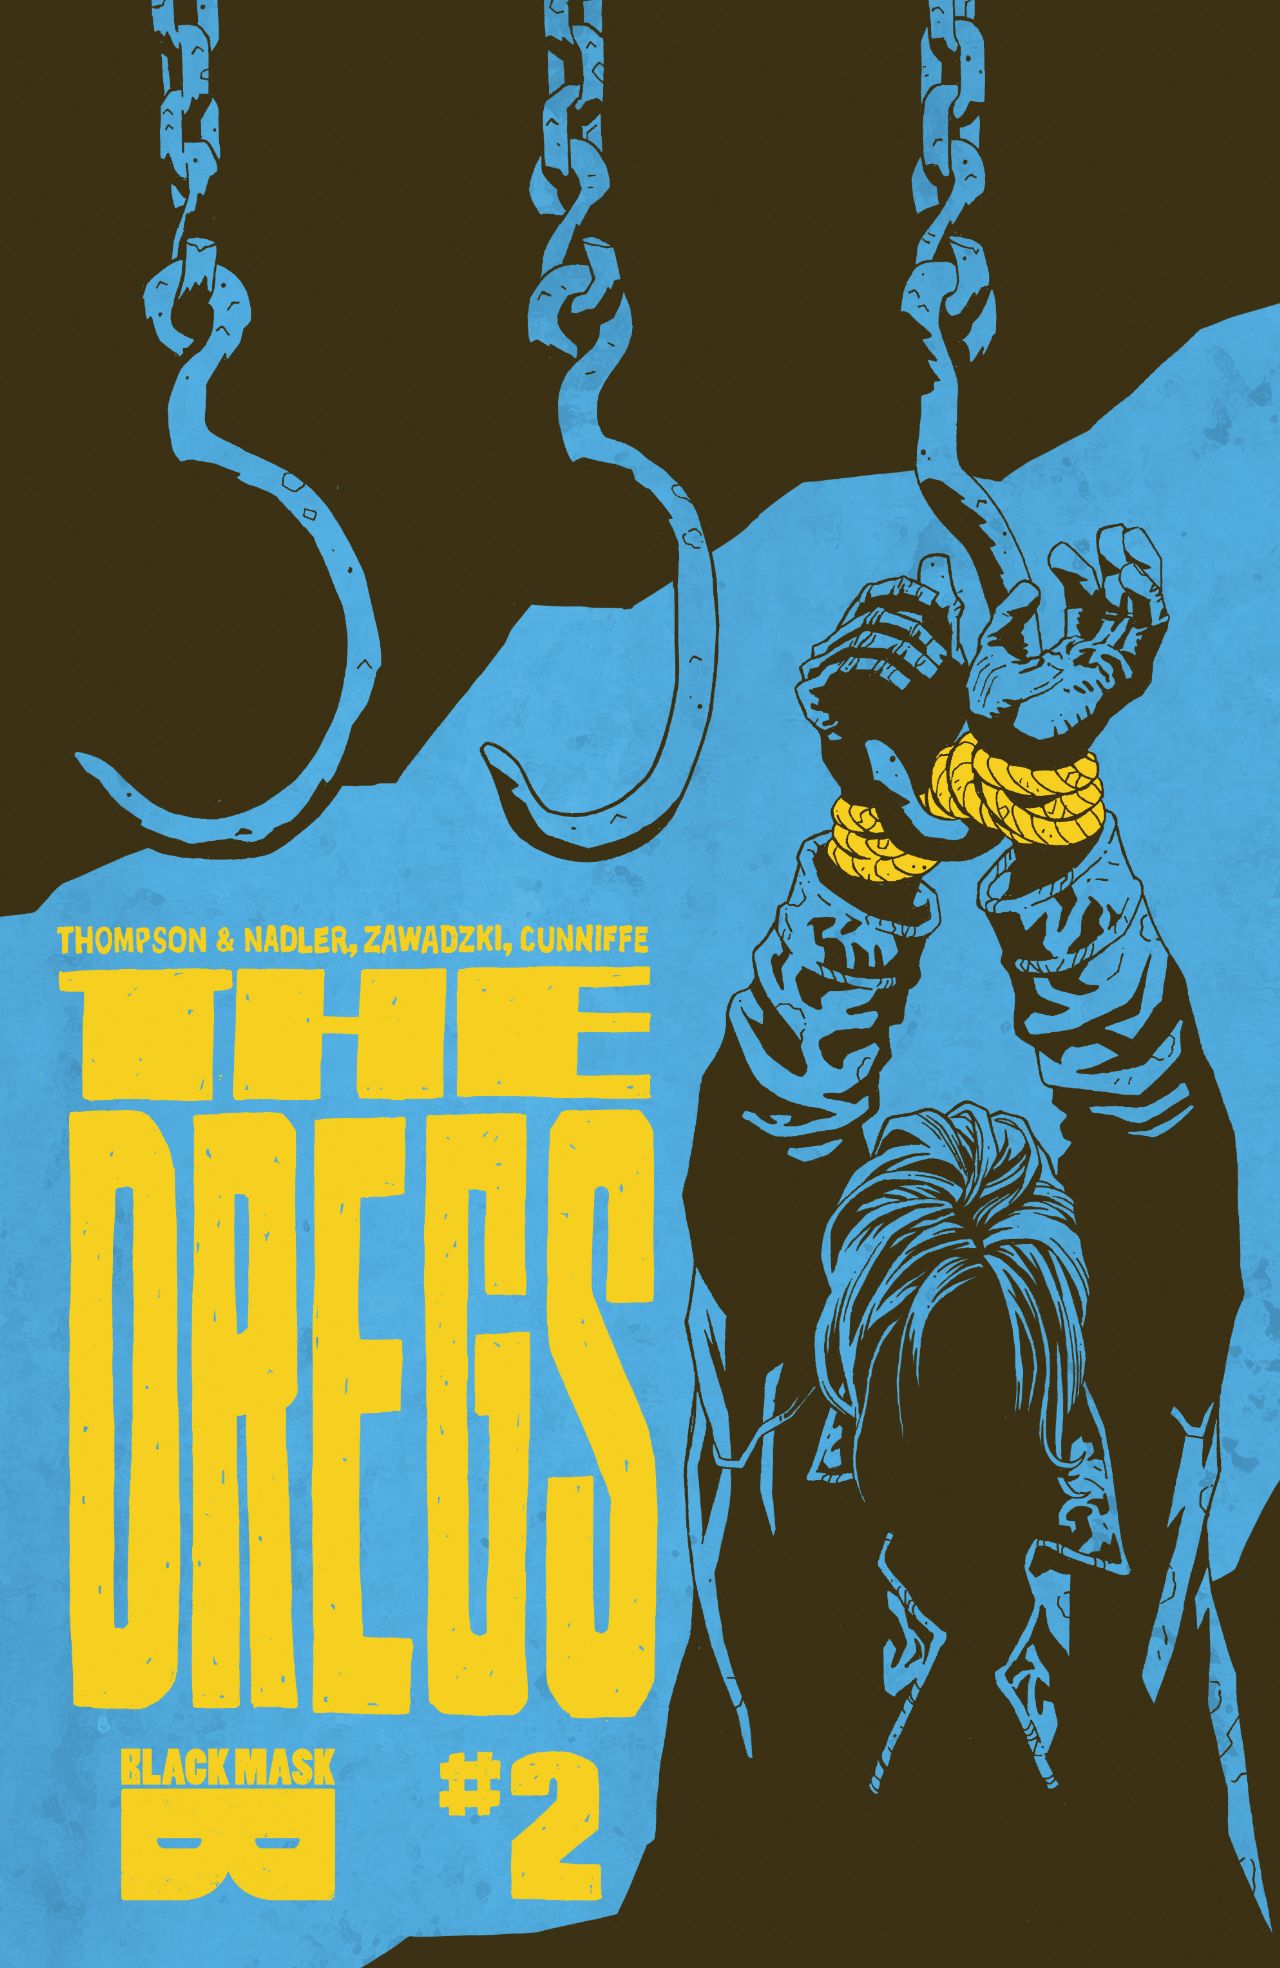 the-dregs-2-review-black-mask-comic-universal-dork